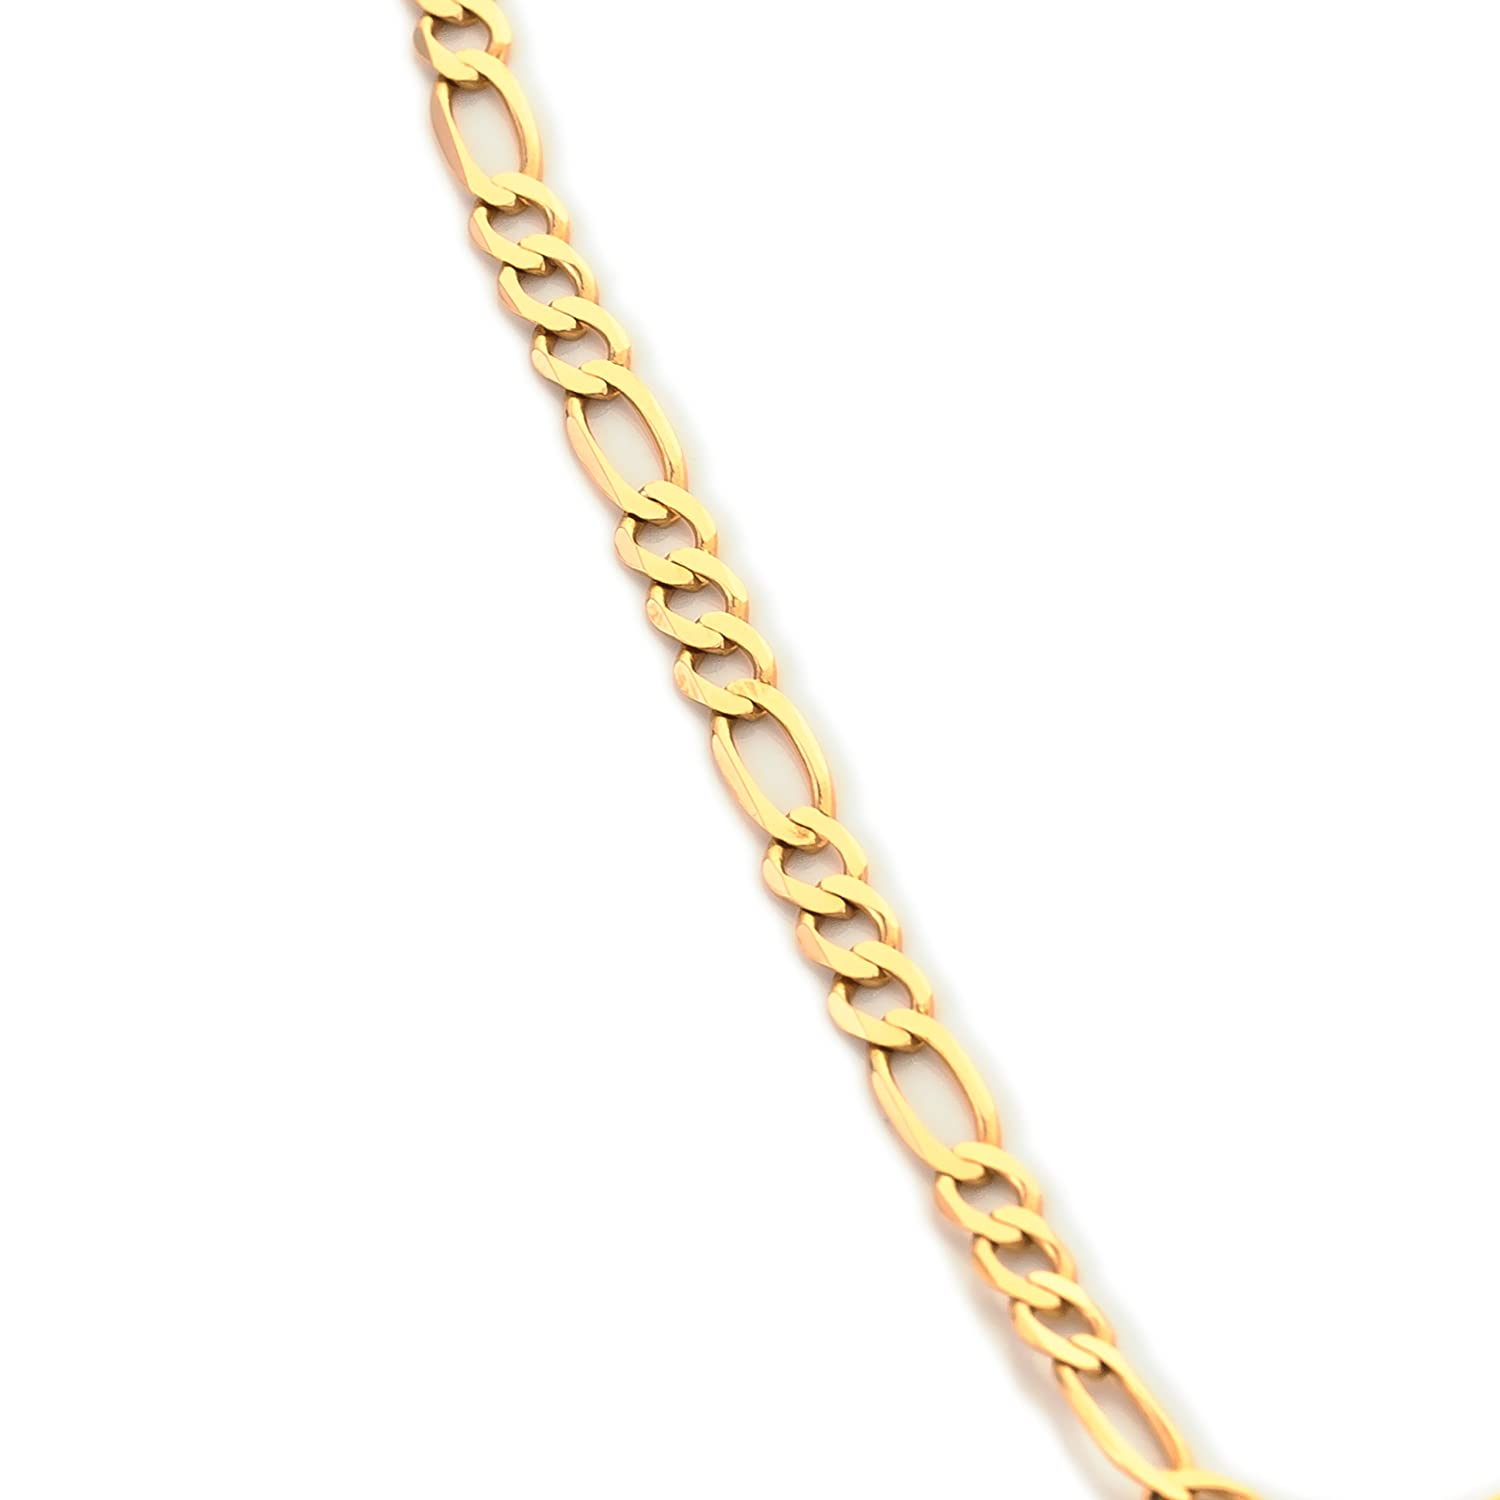 Solid 9ct Gold Diamond Cut Figaro Chain Necklace Fathers Day Guaranteed Weight 1/4oz 18in/45cm Width 4.45mm V4rDMZB